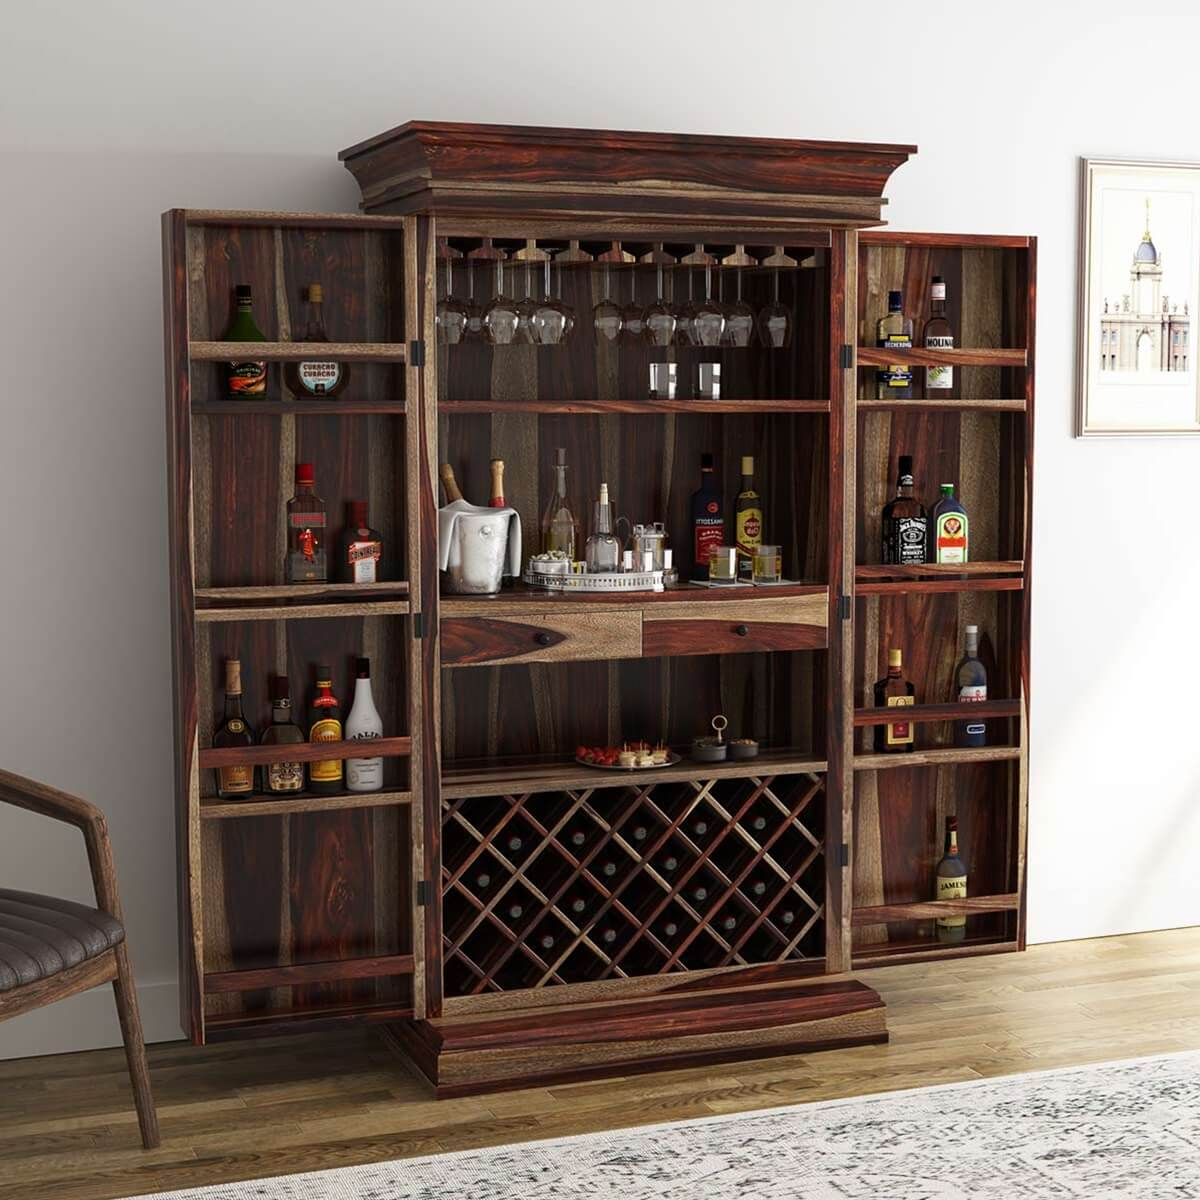 Wood Home Bar Furniture: Ohio Rustic Solid Wood Tall Wine Bar Cabinet